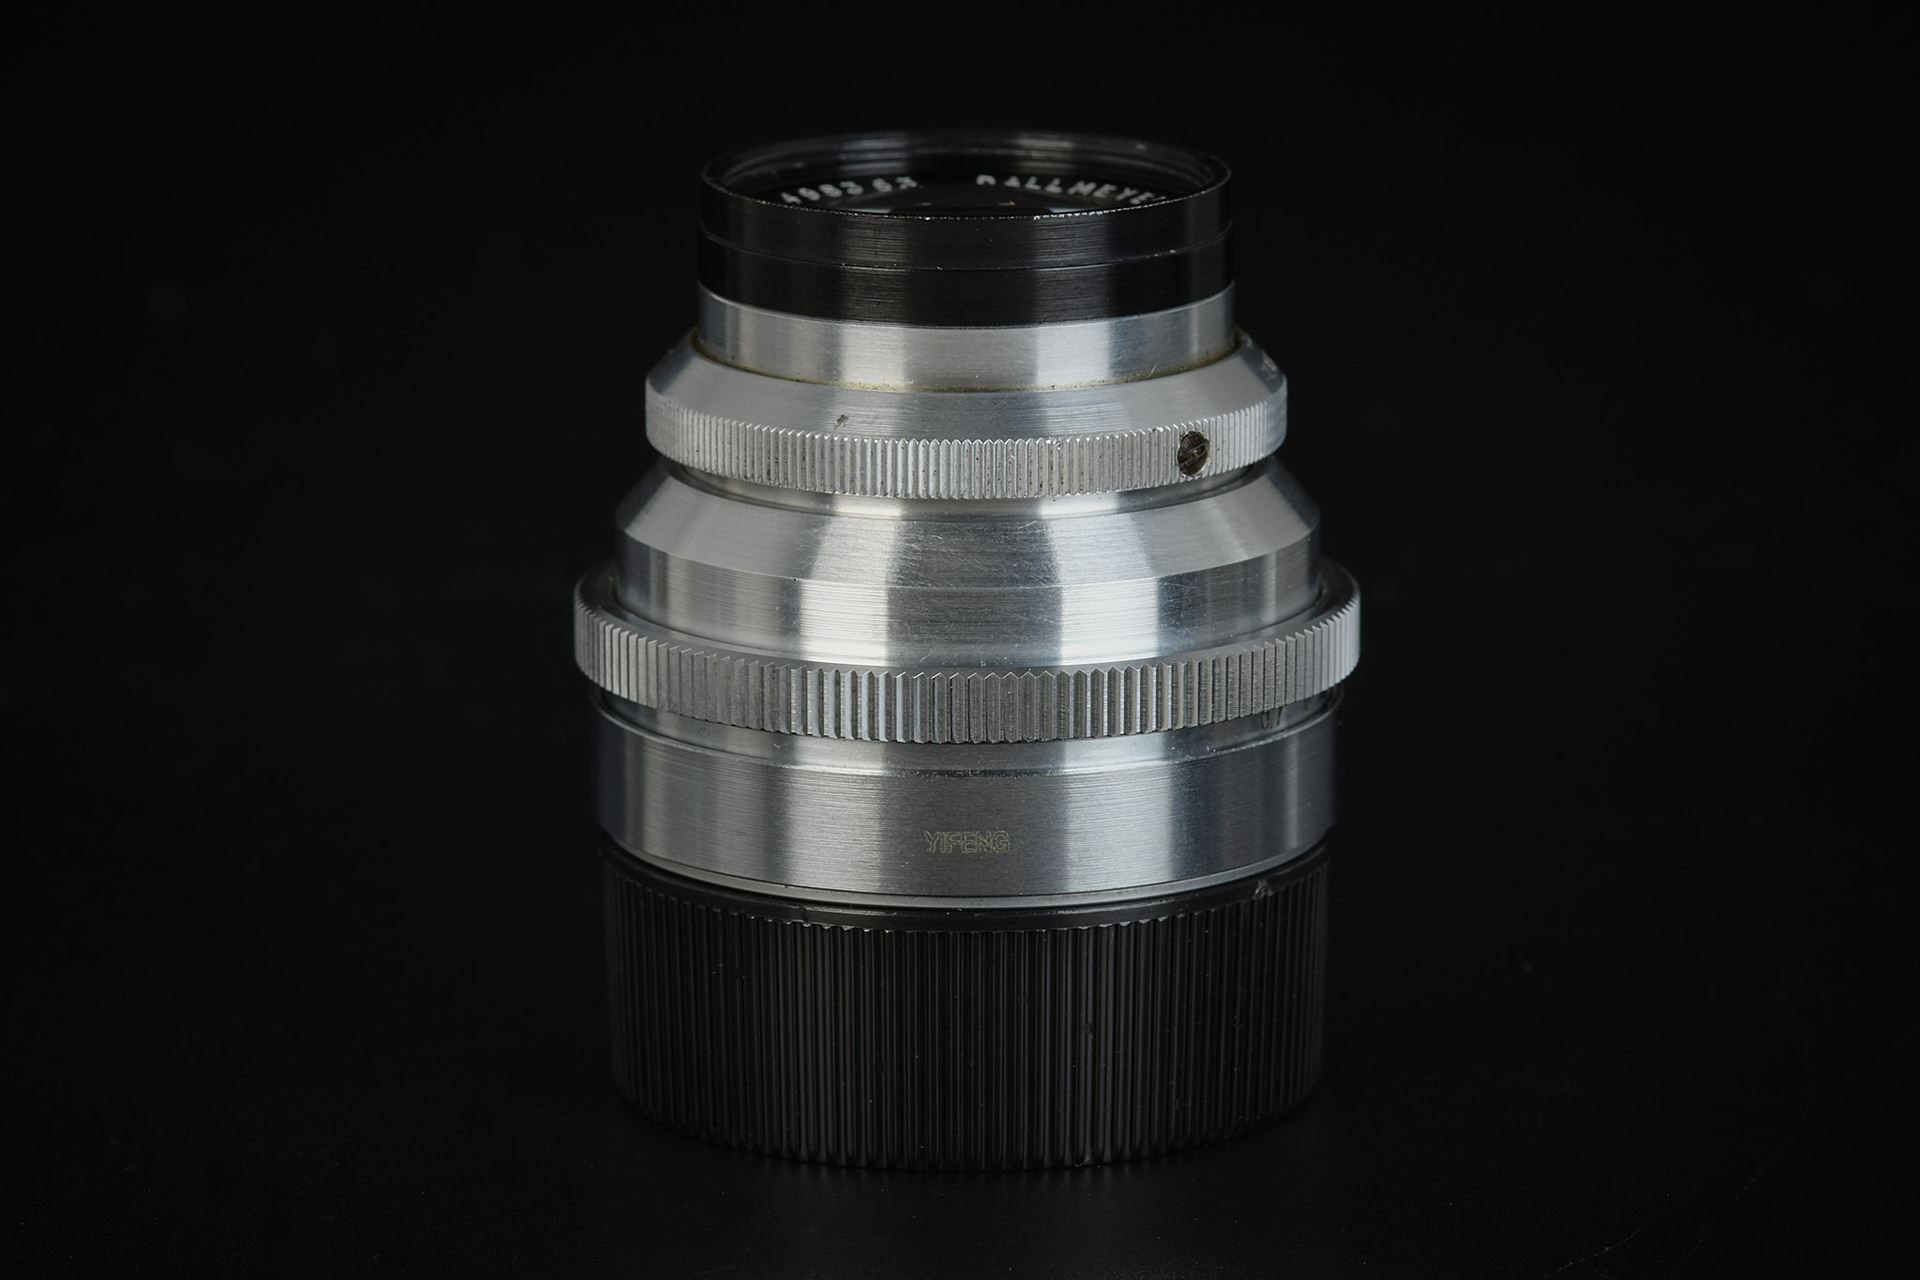 Picture of dallmeyer super-six anastigmat 2inch f/1.9 modified for leica m